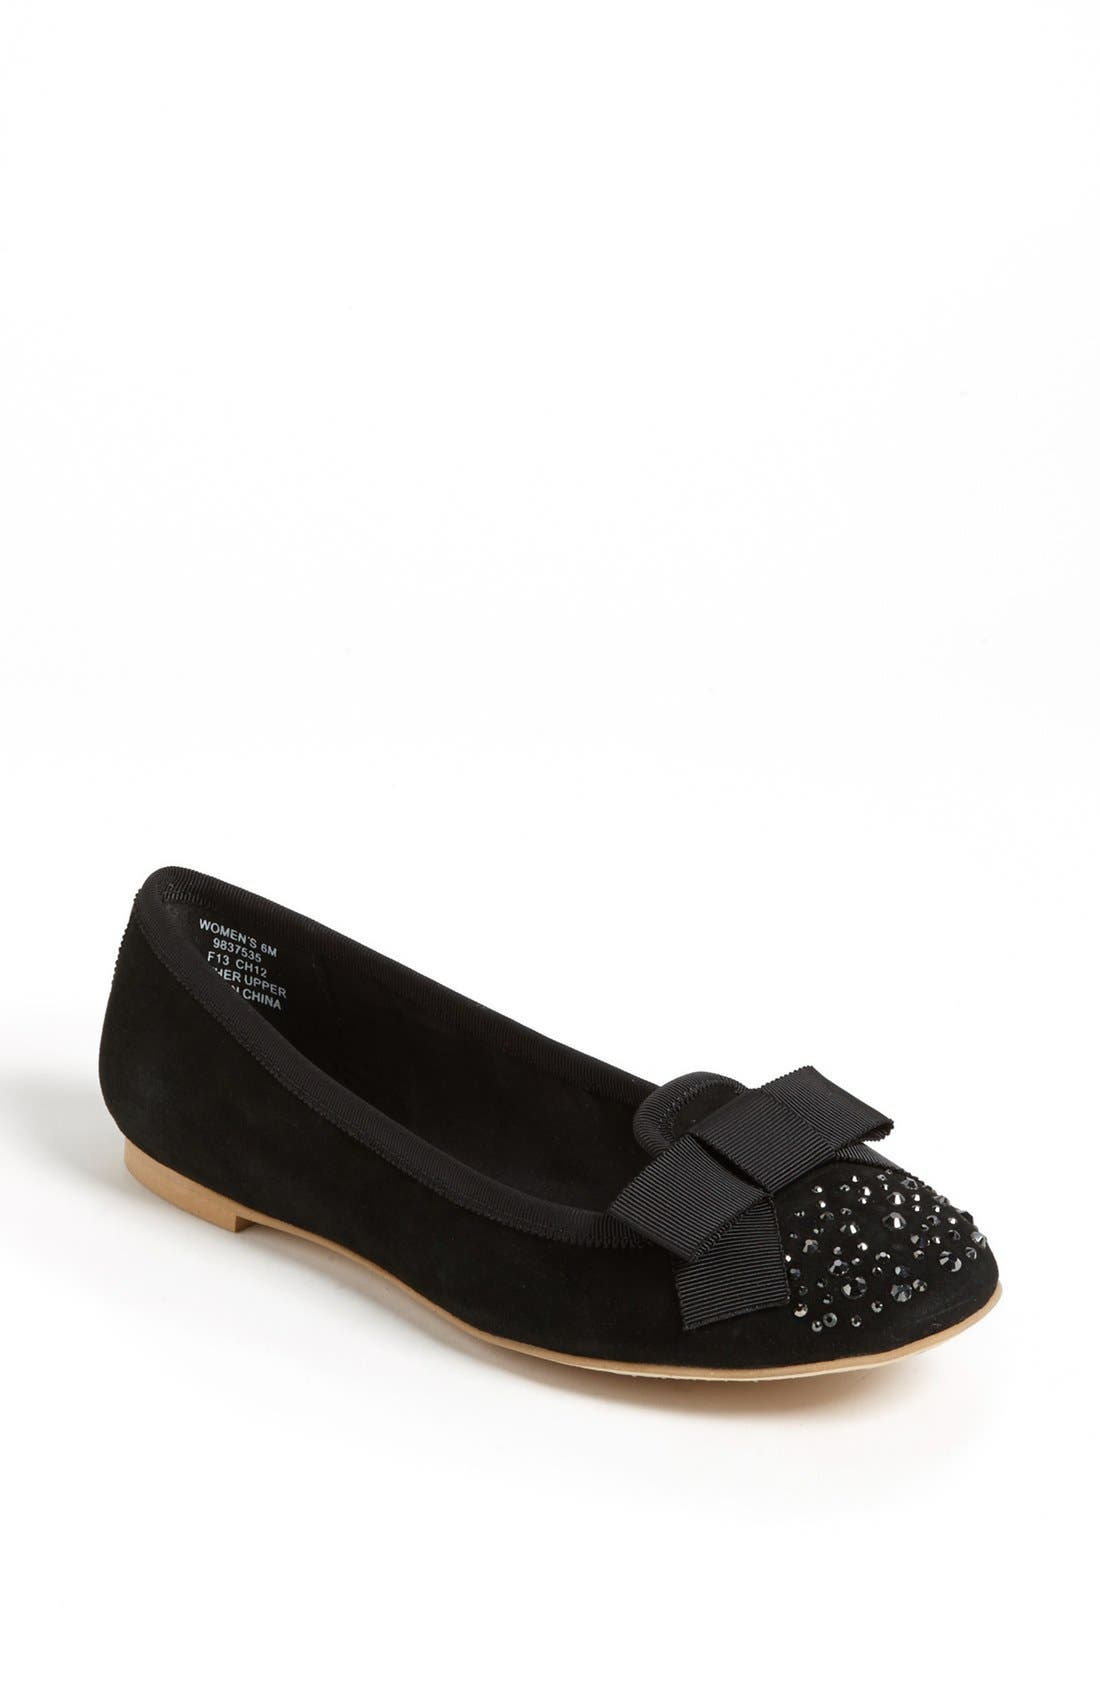 Main Image - Sperry Top-Sider® 'Sophie' Flat